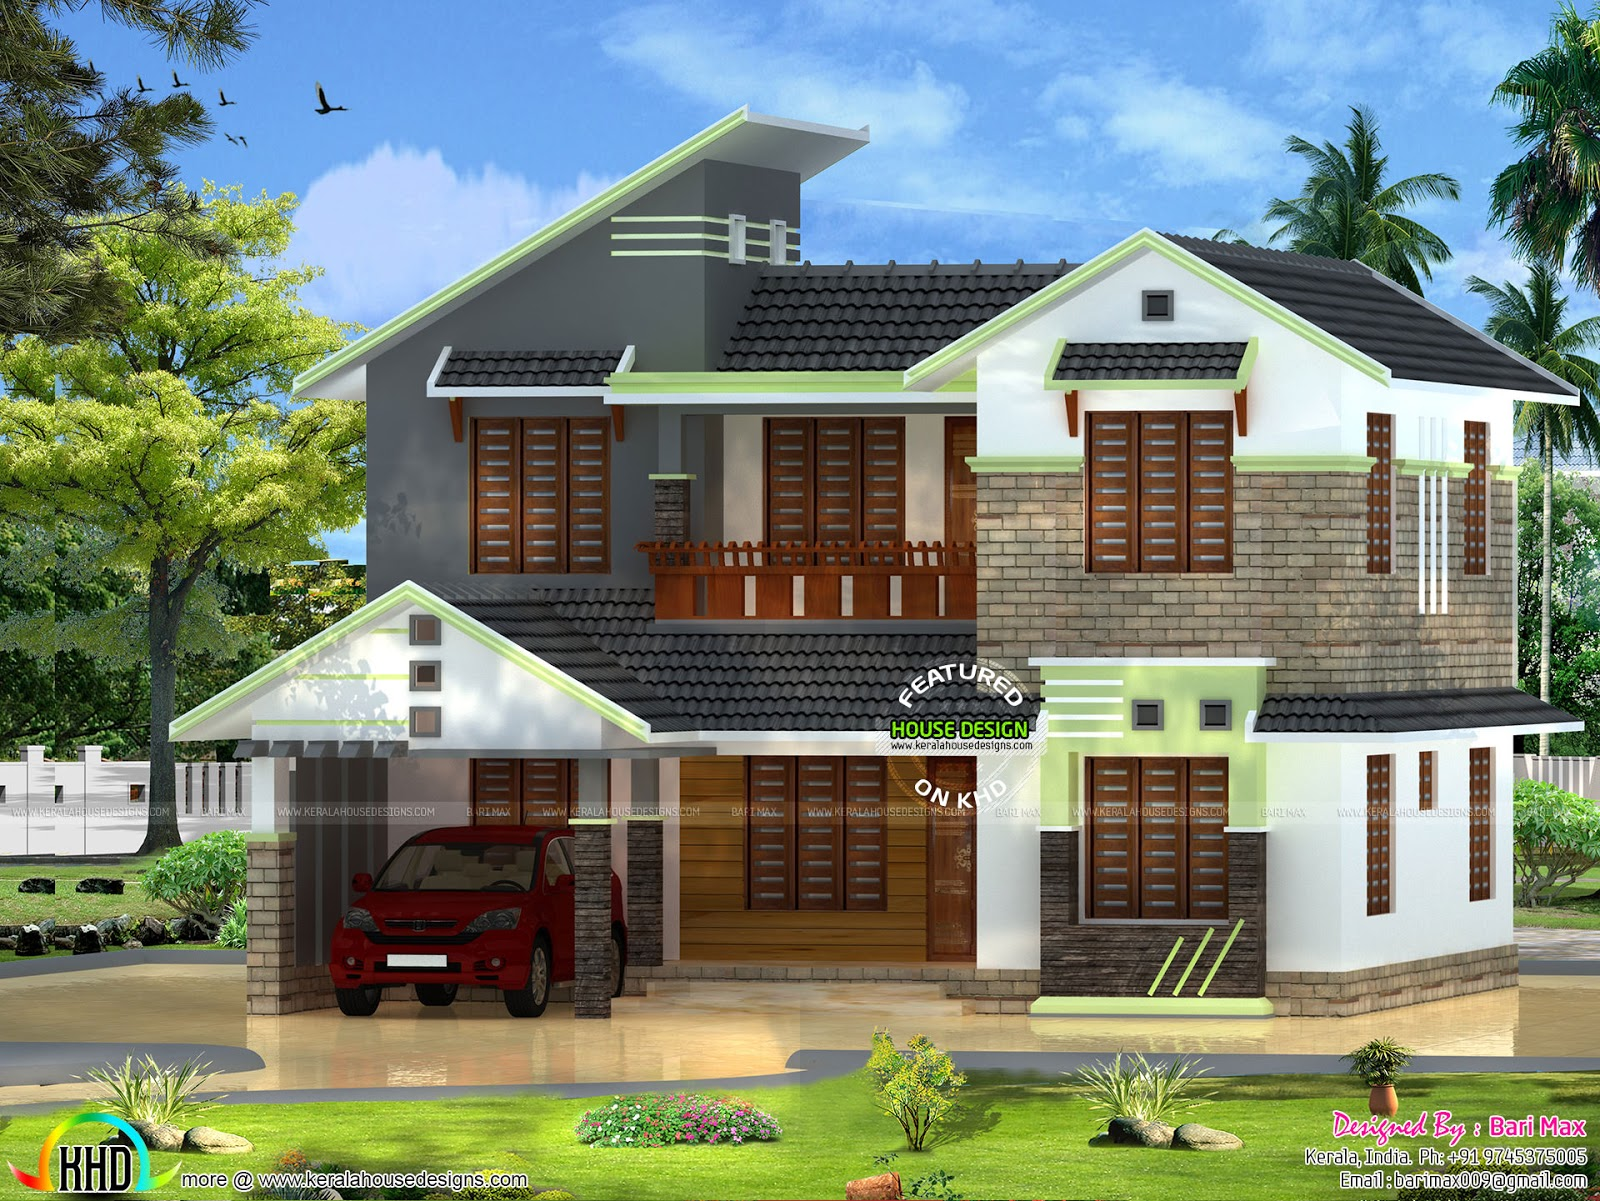 5 BHK house design in 2000 sqft  Kerala home design and floor plans